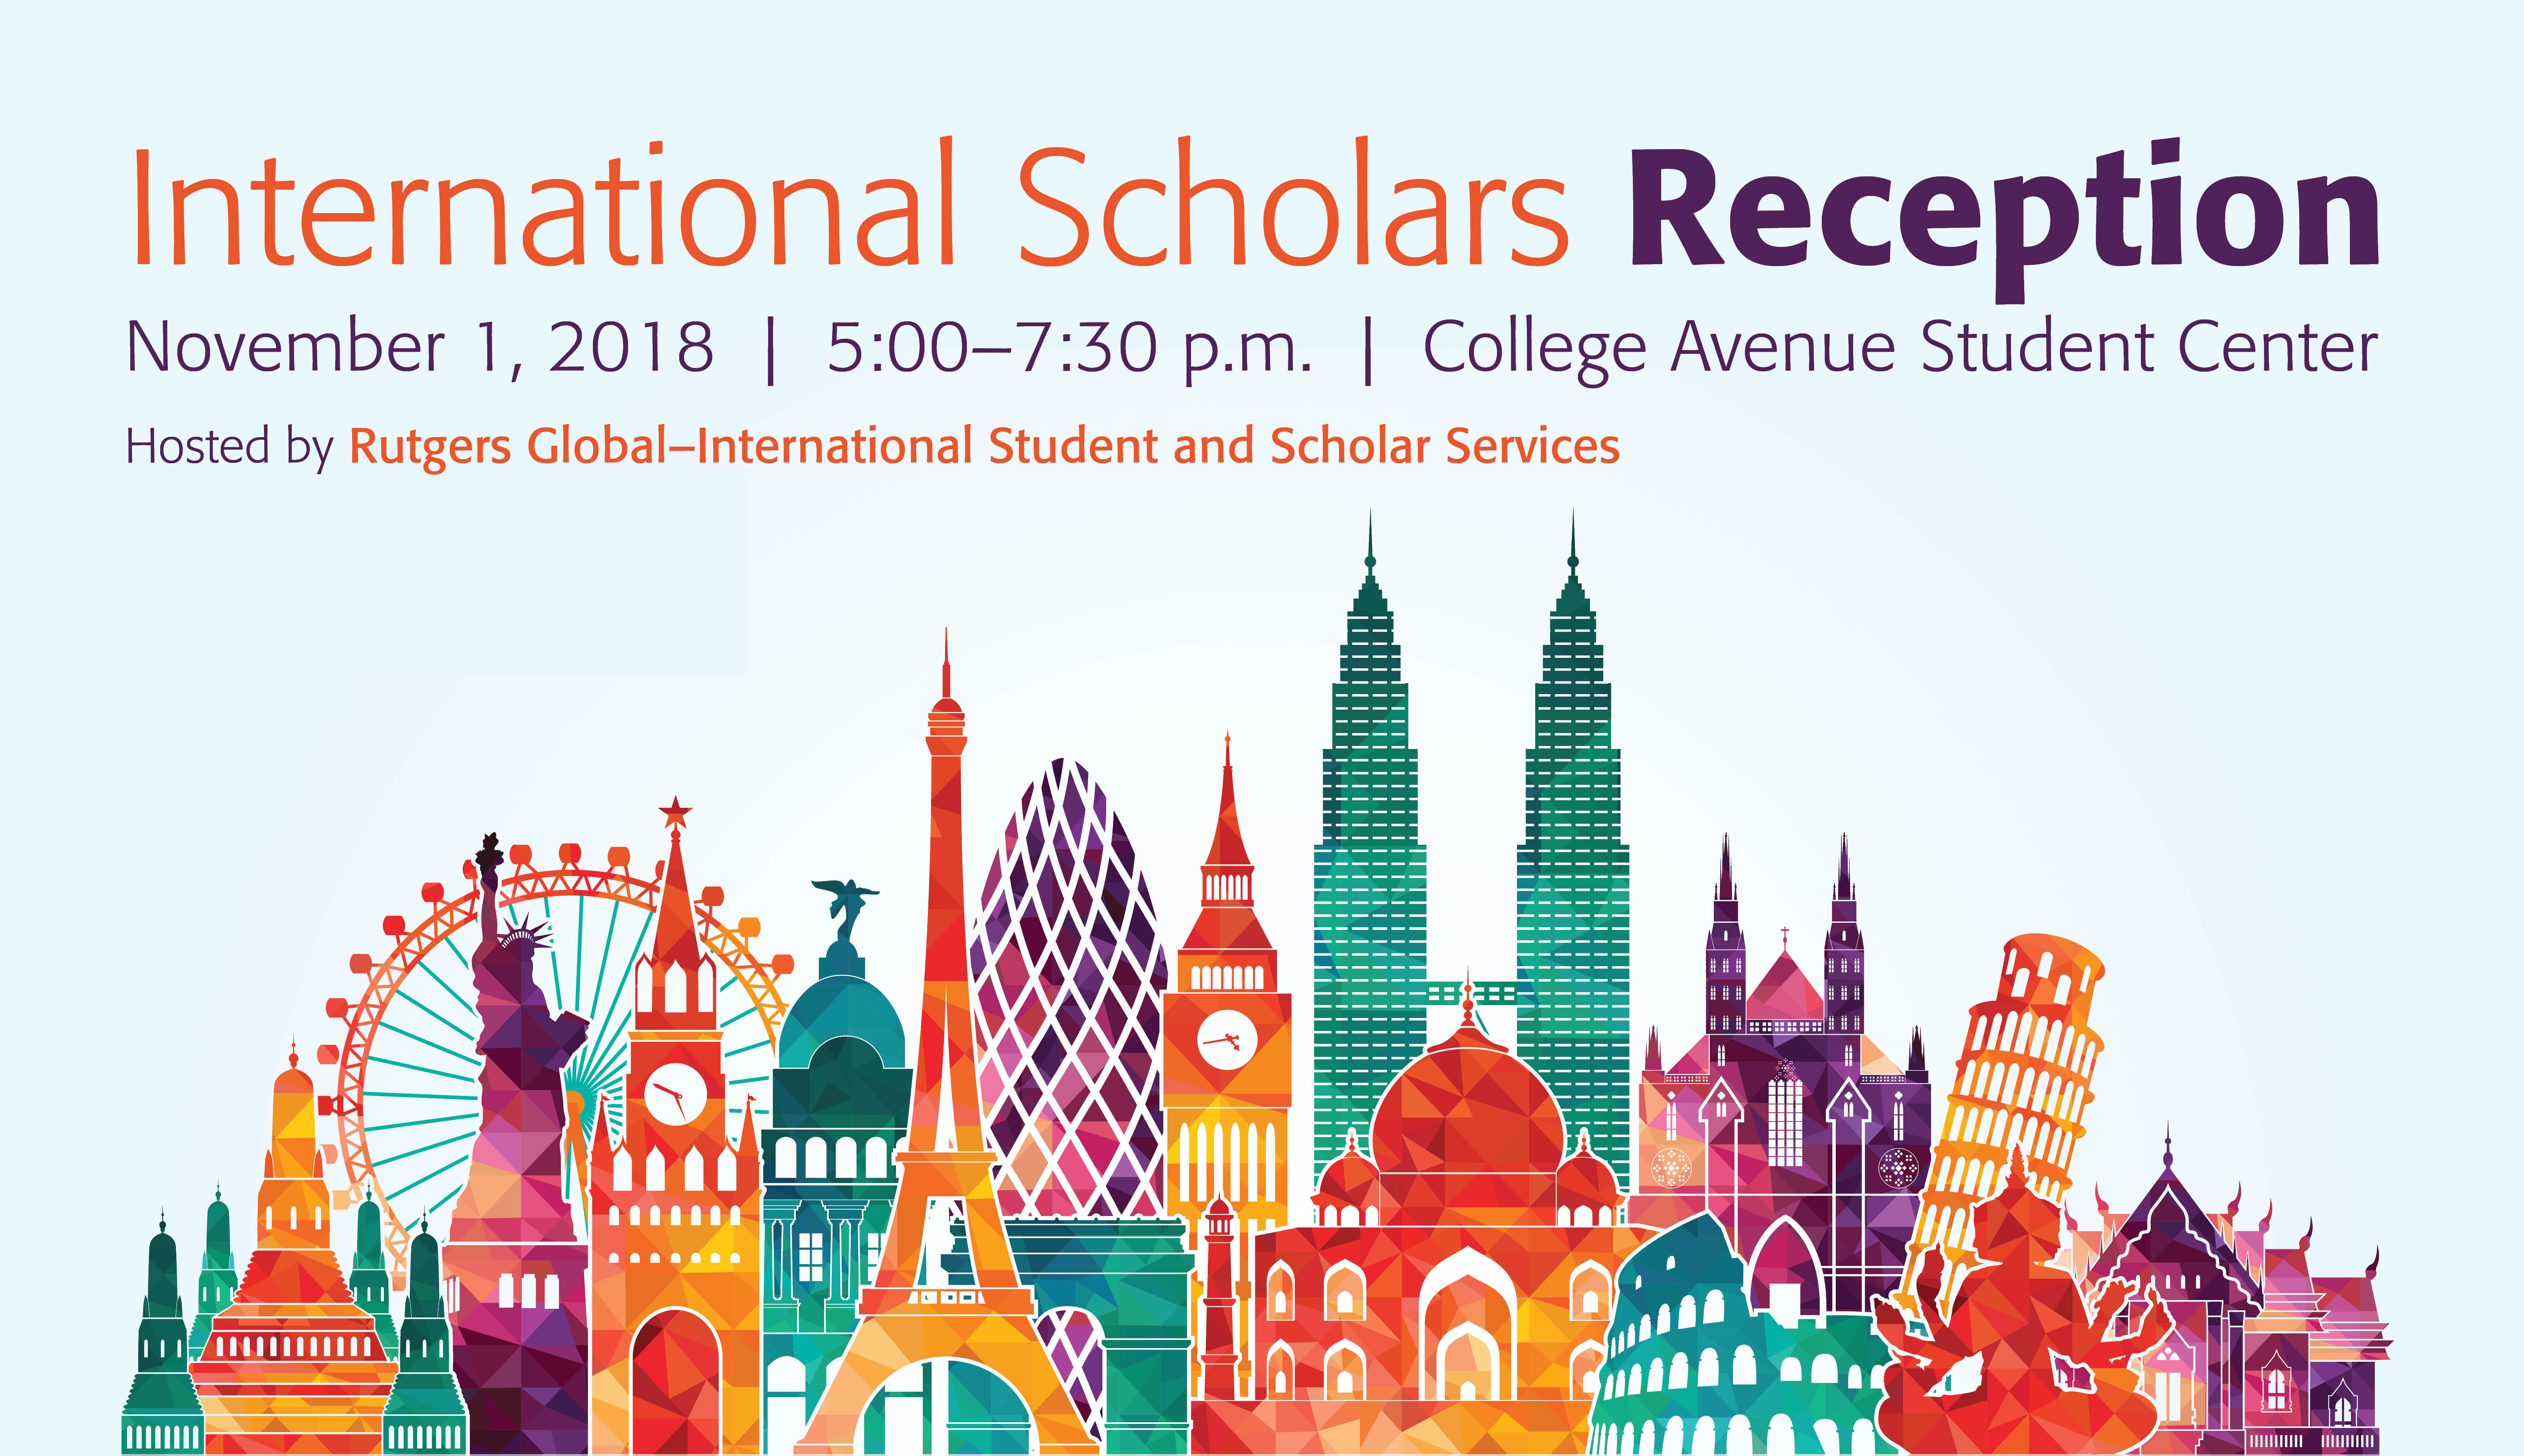 Rutgers Global - International Scholars Reception 2018